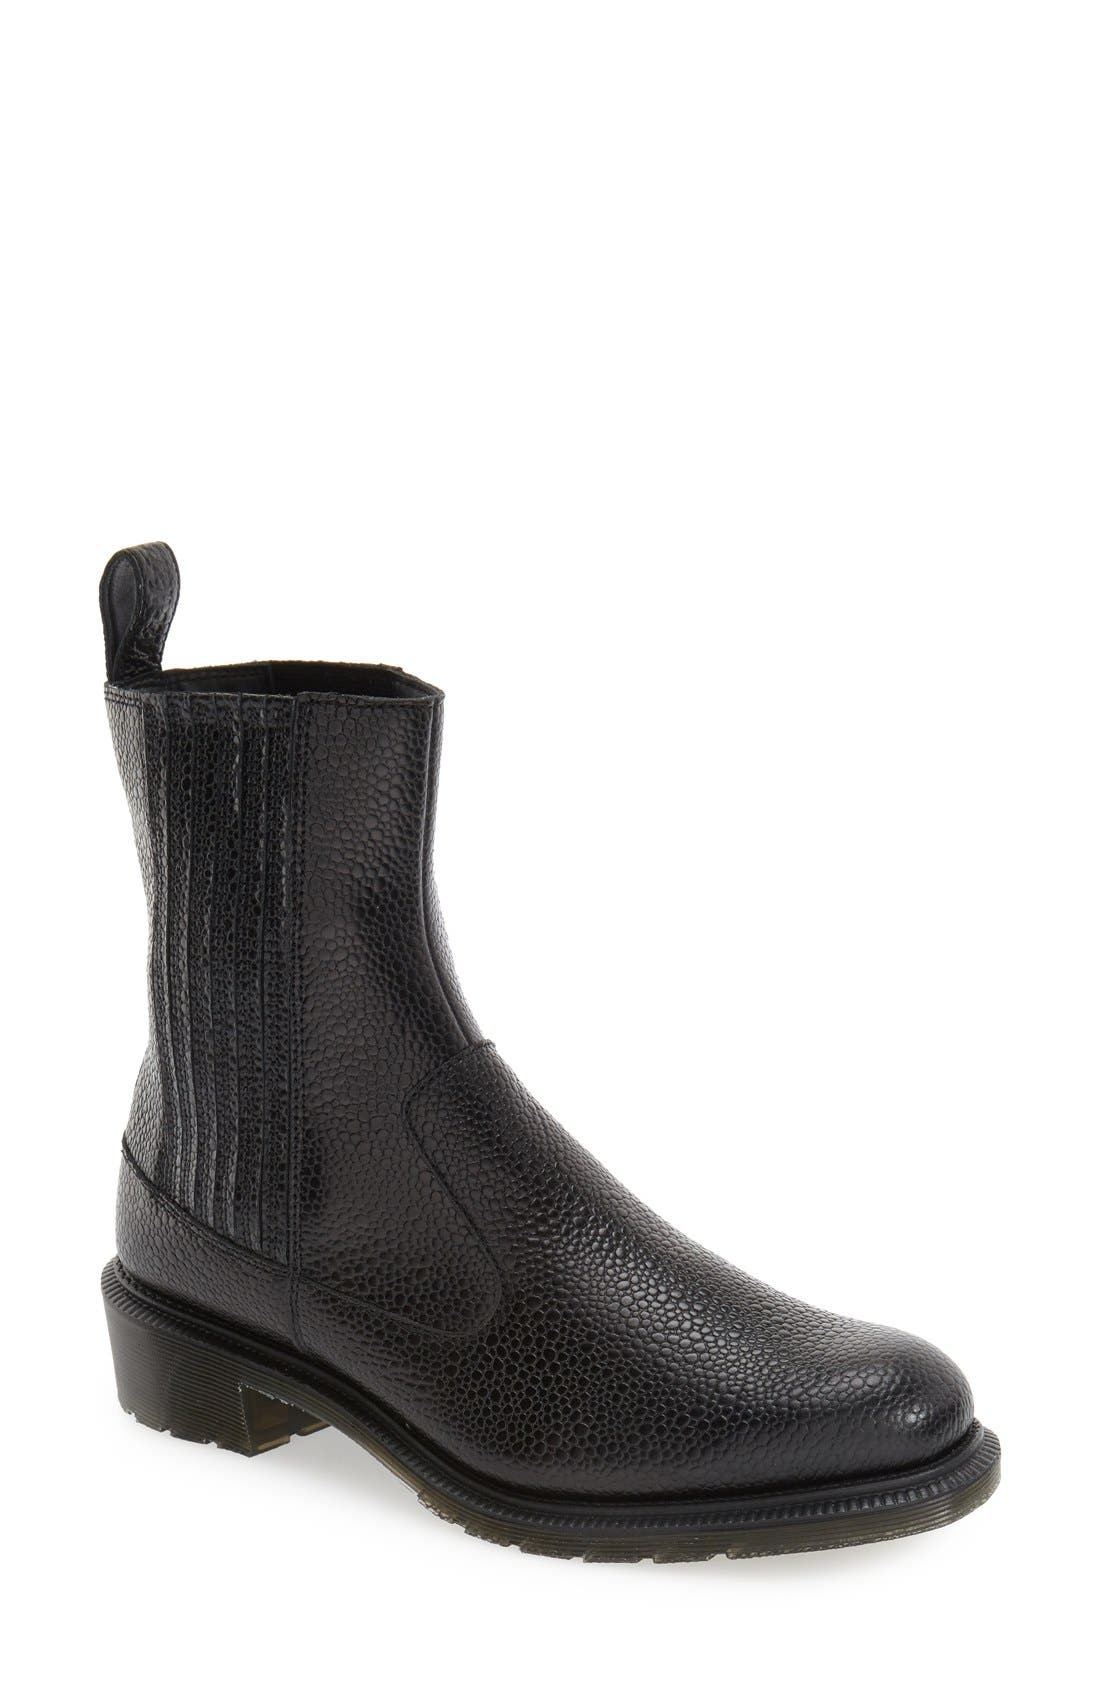 'Eleanore' Chelsea Boot, Main, color, 001